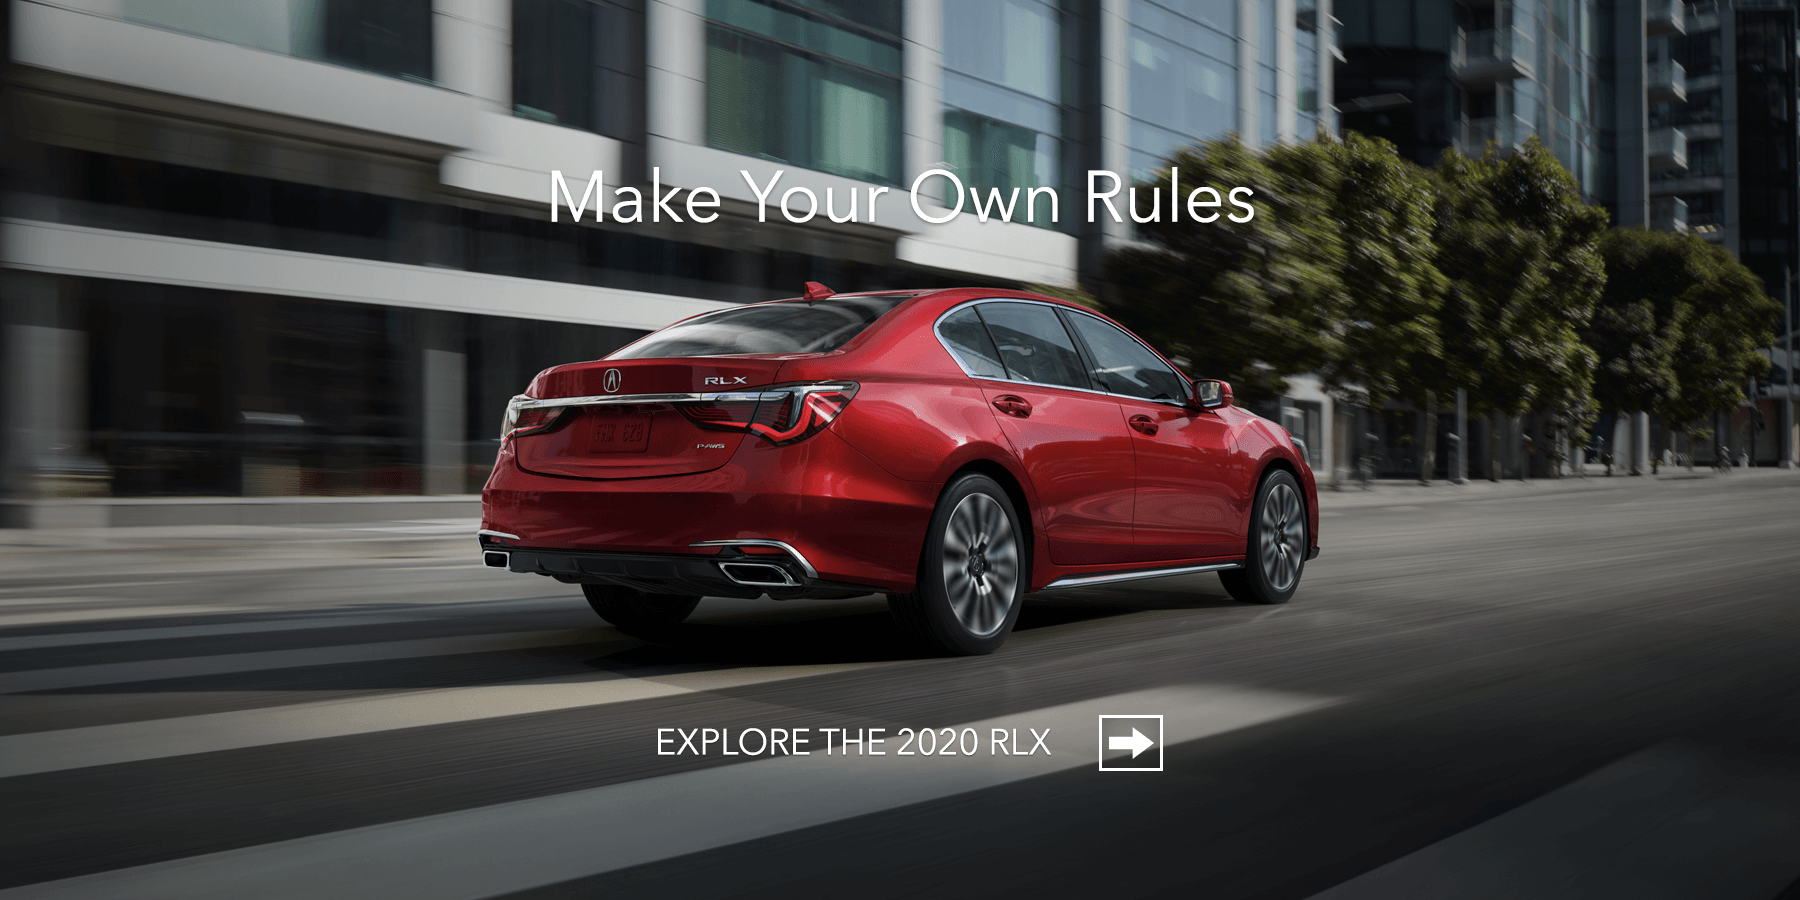 2020 Acura RLX Brilliant Red Metallic Rear Angle HP Slide